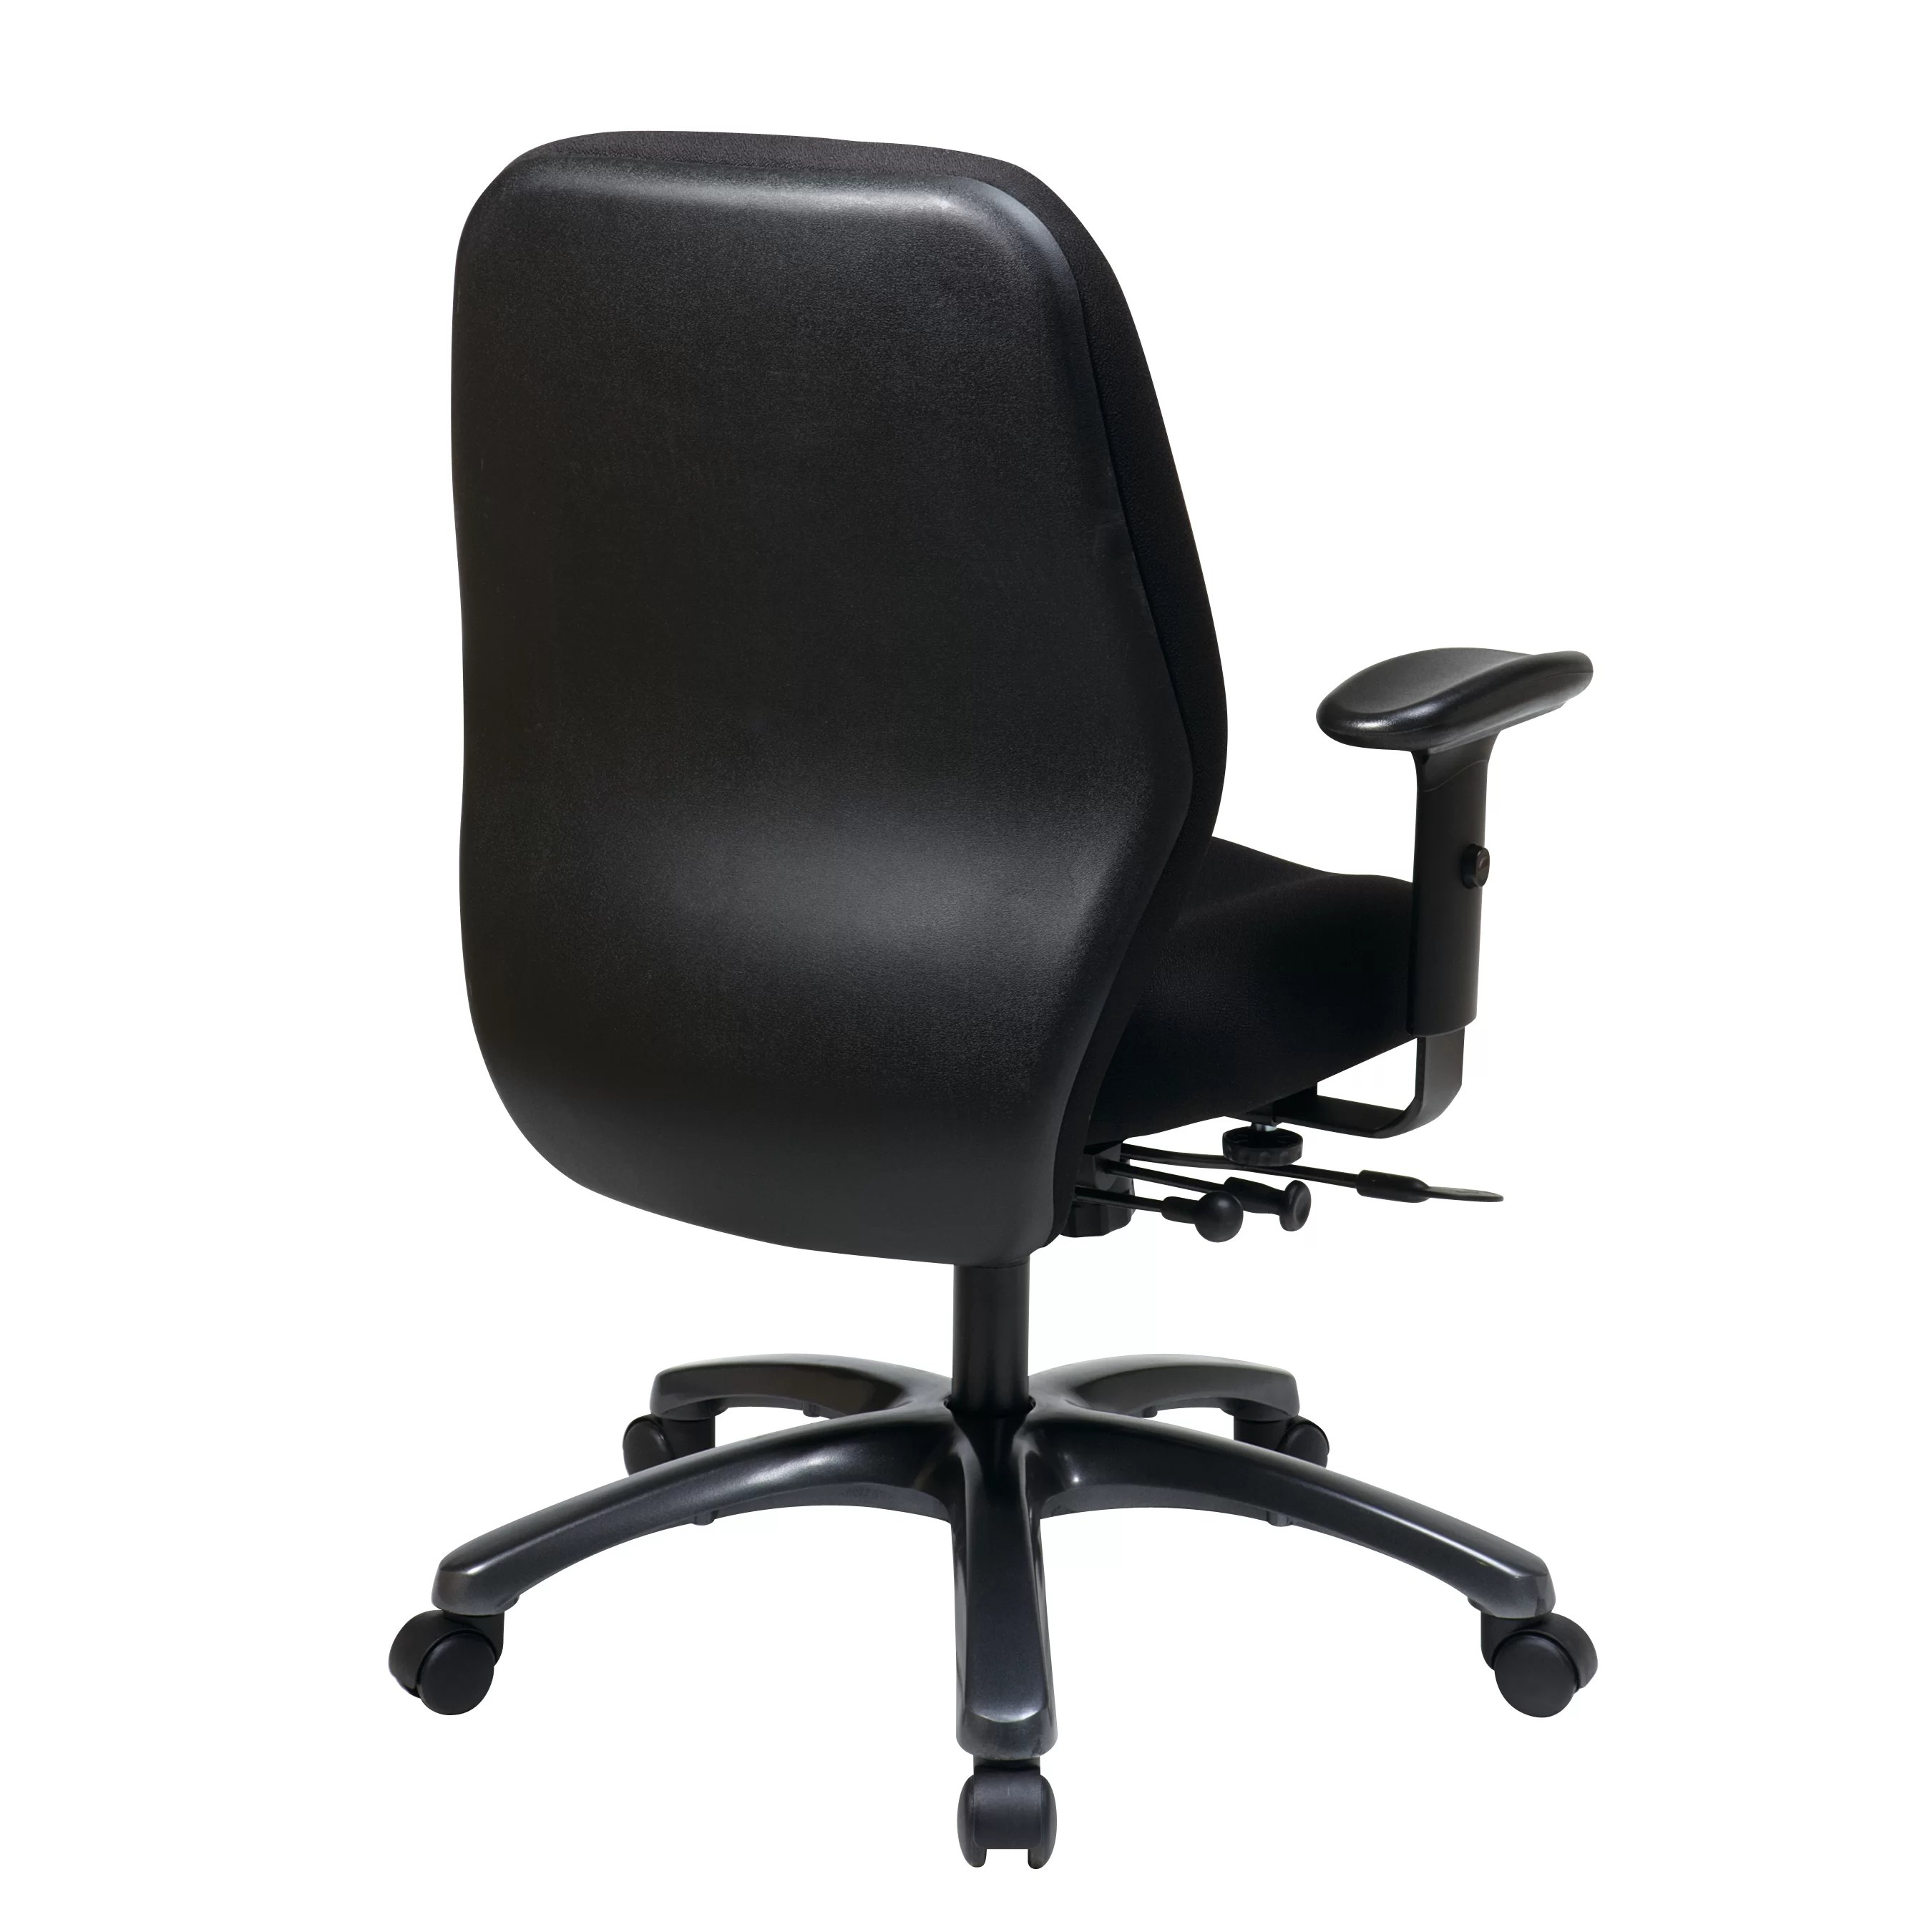 ergonomic chair tilt kitchen covers ikea 24 hour with synchro seat slider and